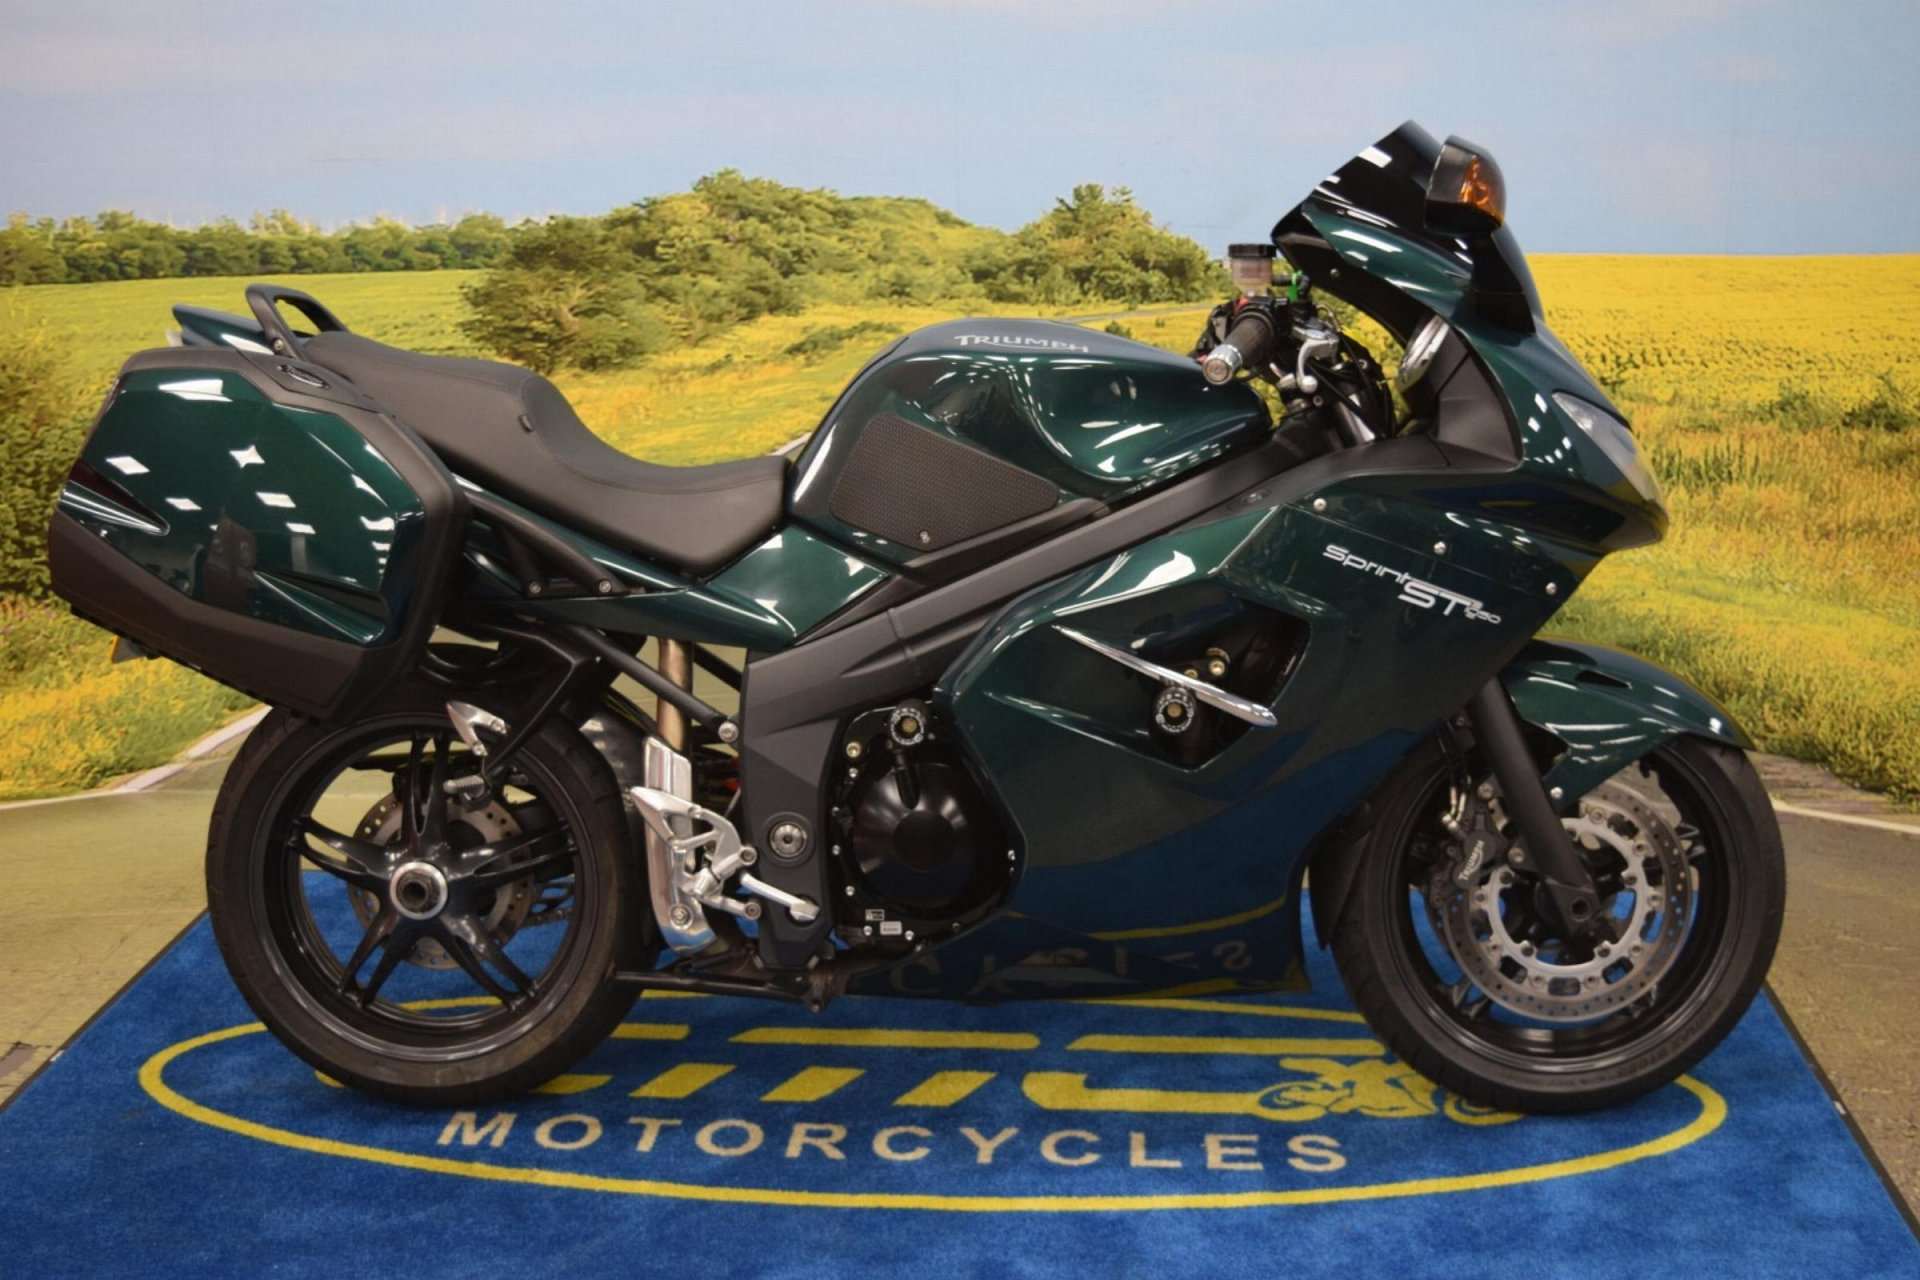 2011 Triumph Sprint ST1050 for sale in Staffordshire